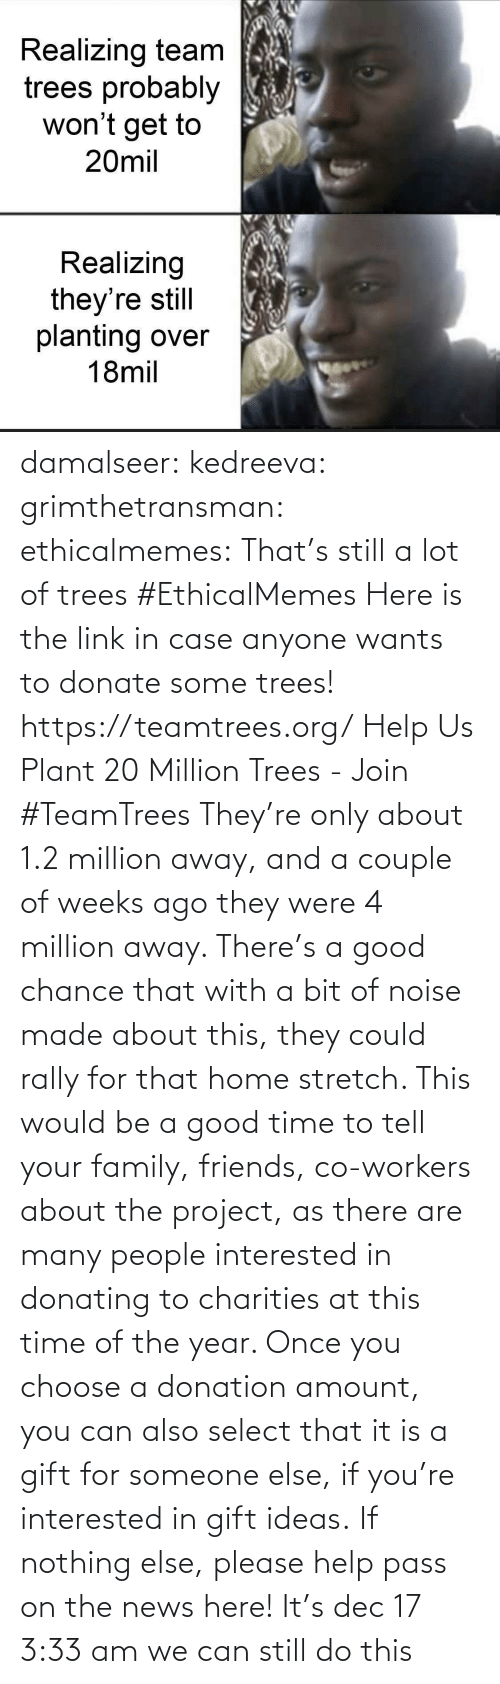 1 2: Realizing team  trees probably  won't get to  20mil  Realizing  they're still  planting over  18mil damalseer:  kedreeva: grimthetransman:  ethicalmemes:  That's still a lot of trees #EthicalMemes   Here is the link in case anyone wants to donate some trees!  https://teamtrees.org/ Help Us Plant 20 Million Trees - Join #TeamTrees  They're only about 1.2 million away, and a couple of weeks ago they were 4 million away. There's a good chance that with a bit of noise made about this, they could rally for that home stretch. This would be a good time to tell your family, friends, co-workers about the project, as there are many people interested in donating to charities at this time of the year. Once you choose a donation amount, you can also select that it is a gift for someone else, if you're interested in gift ideas. If nothing else, please help pass on the news here!    It's dec 17 3:33 am we can still do this